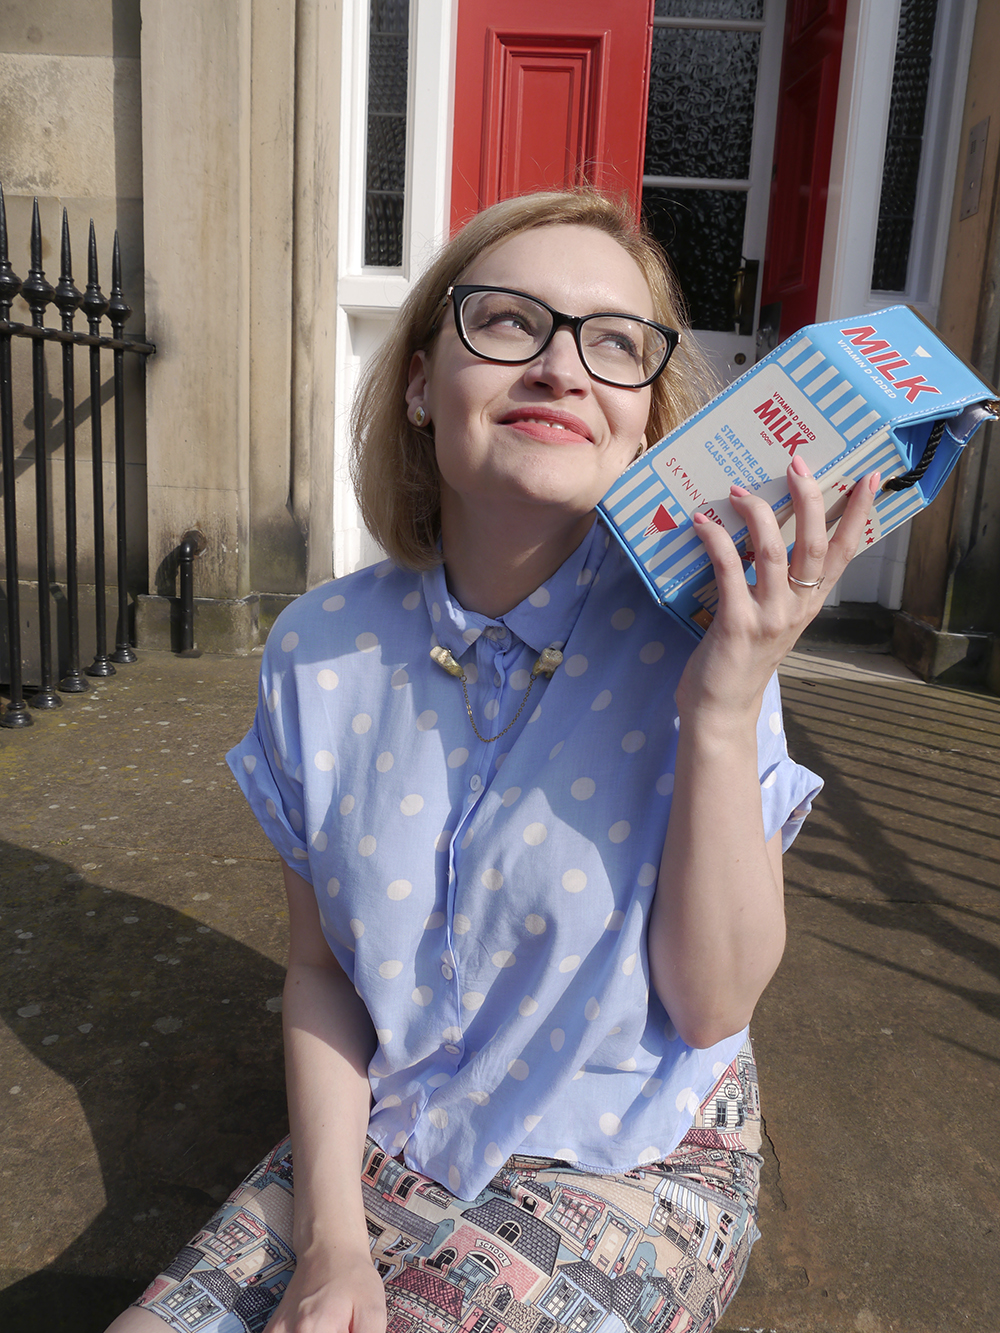 Scottish blogger, Edinburgh blogger, Scottish street style, quirky street style, dressing to a theme, food inspired outfit, pale girl style, girl enjoying milk, noveltymilk bag